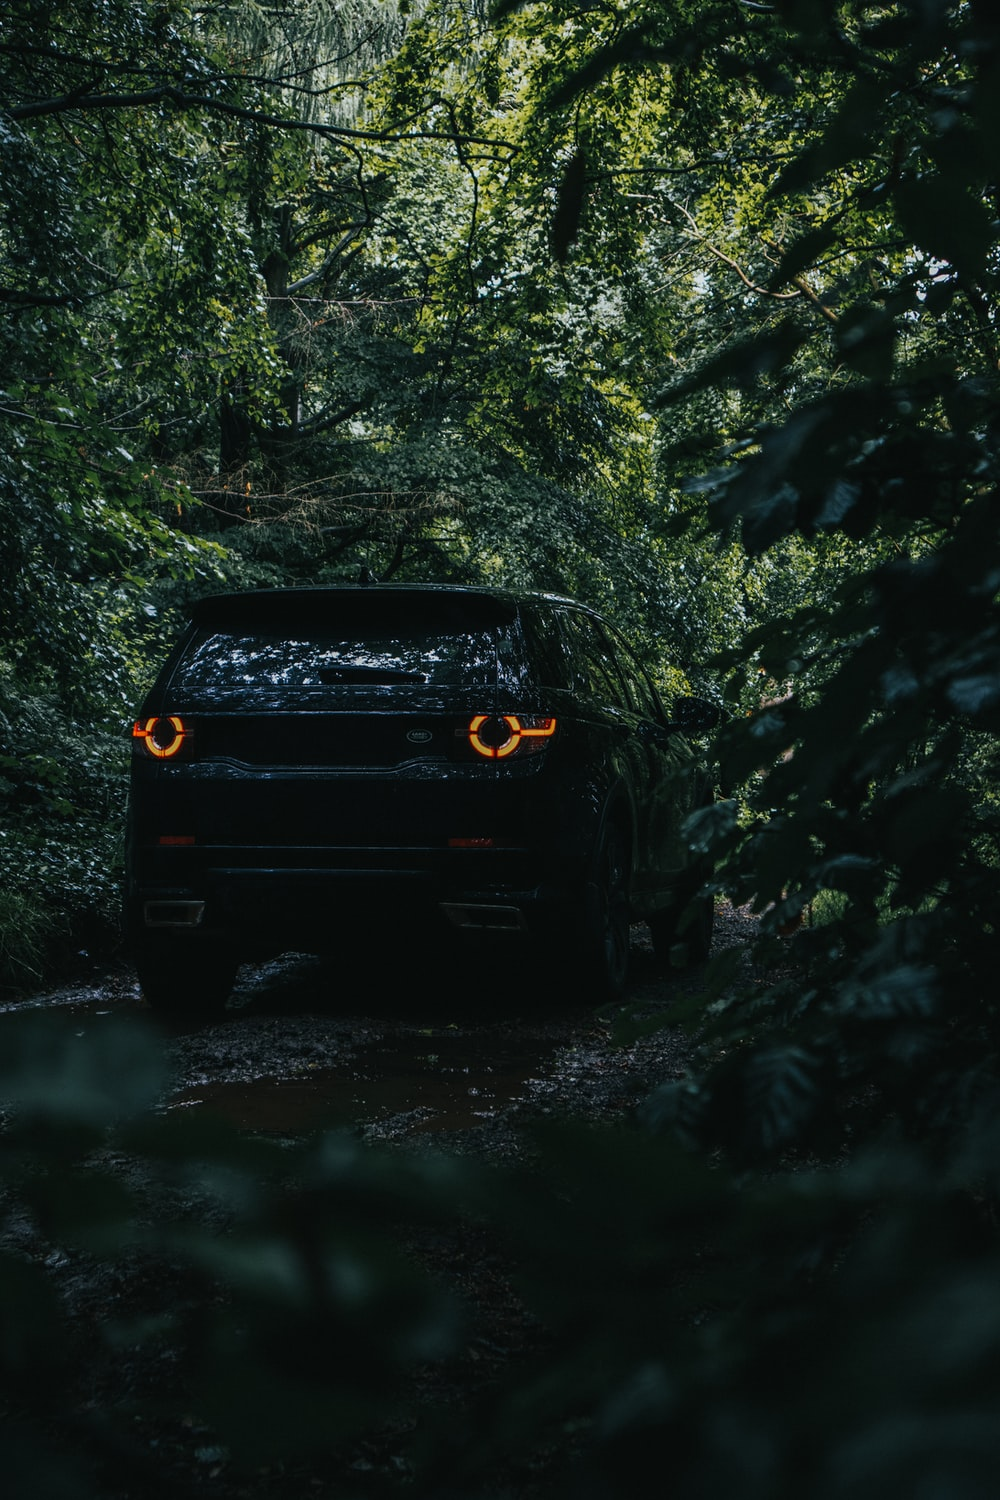 black suv in forest during daytime